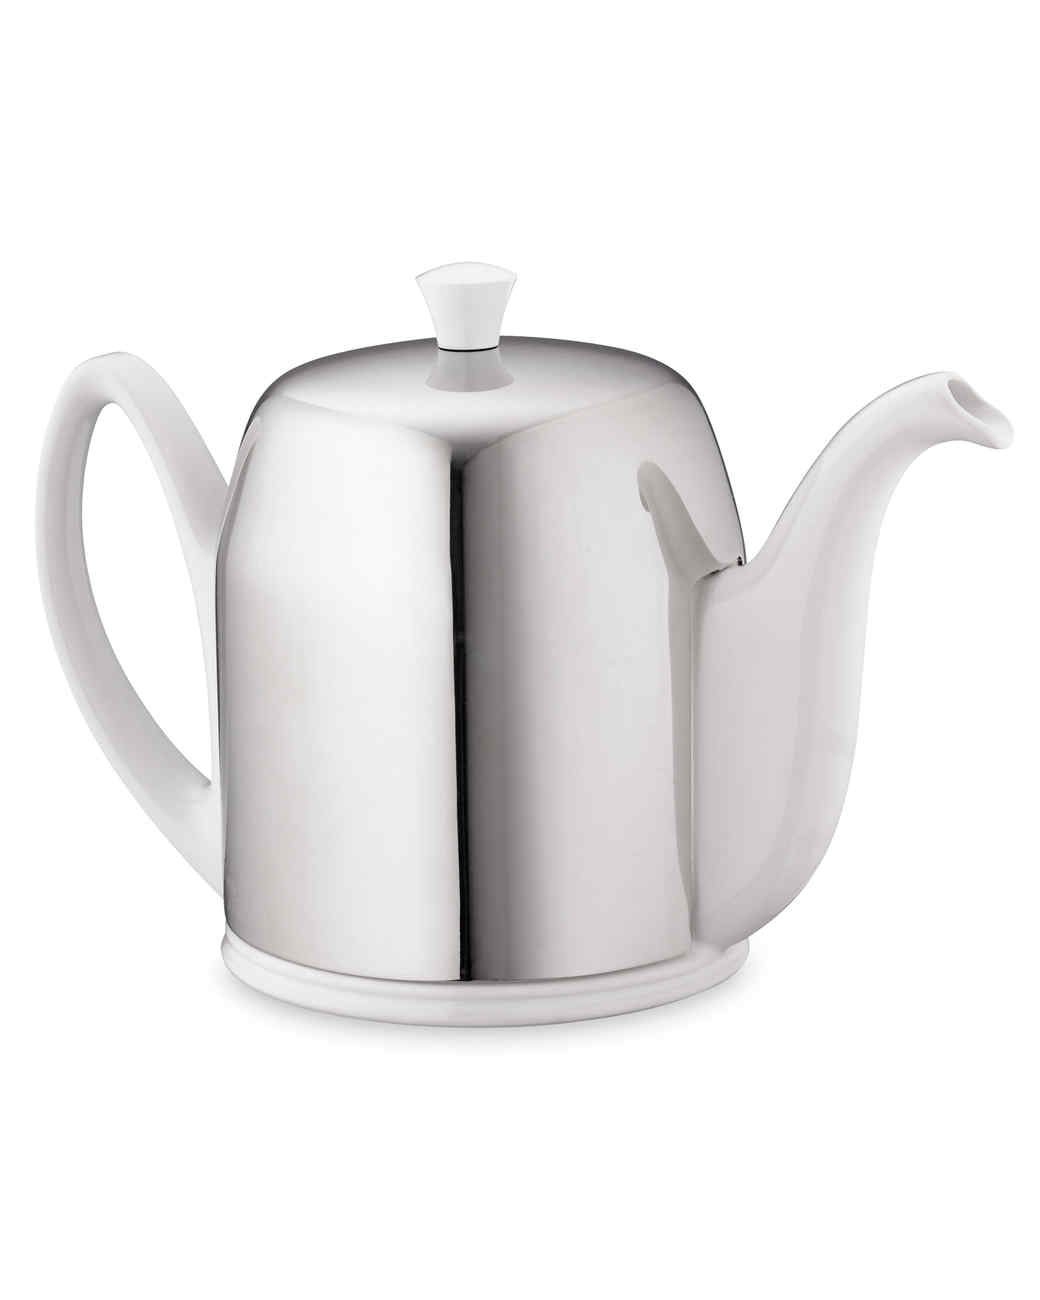 williams-sonoma-teapot-insulated-highres-ms109215.jpg